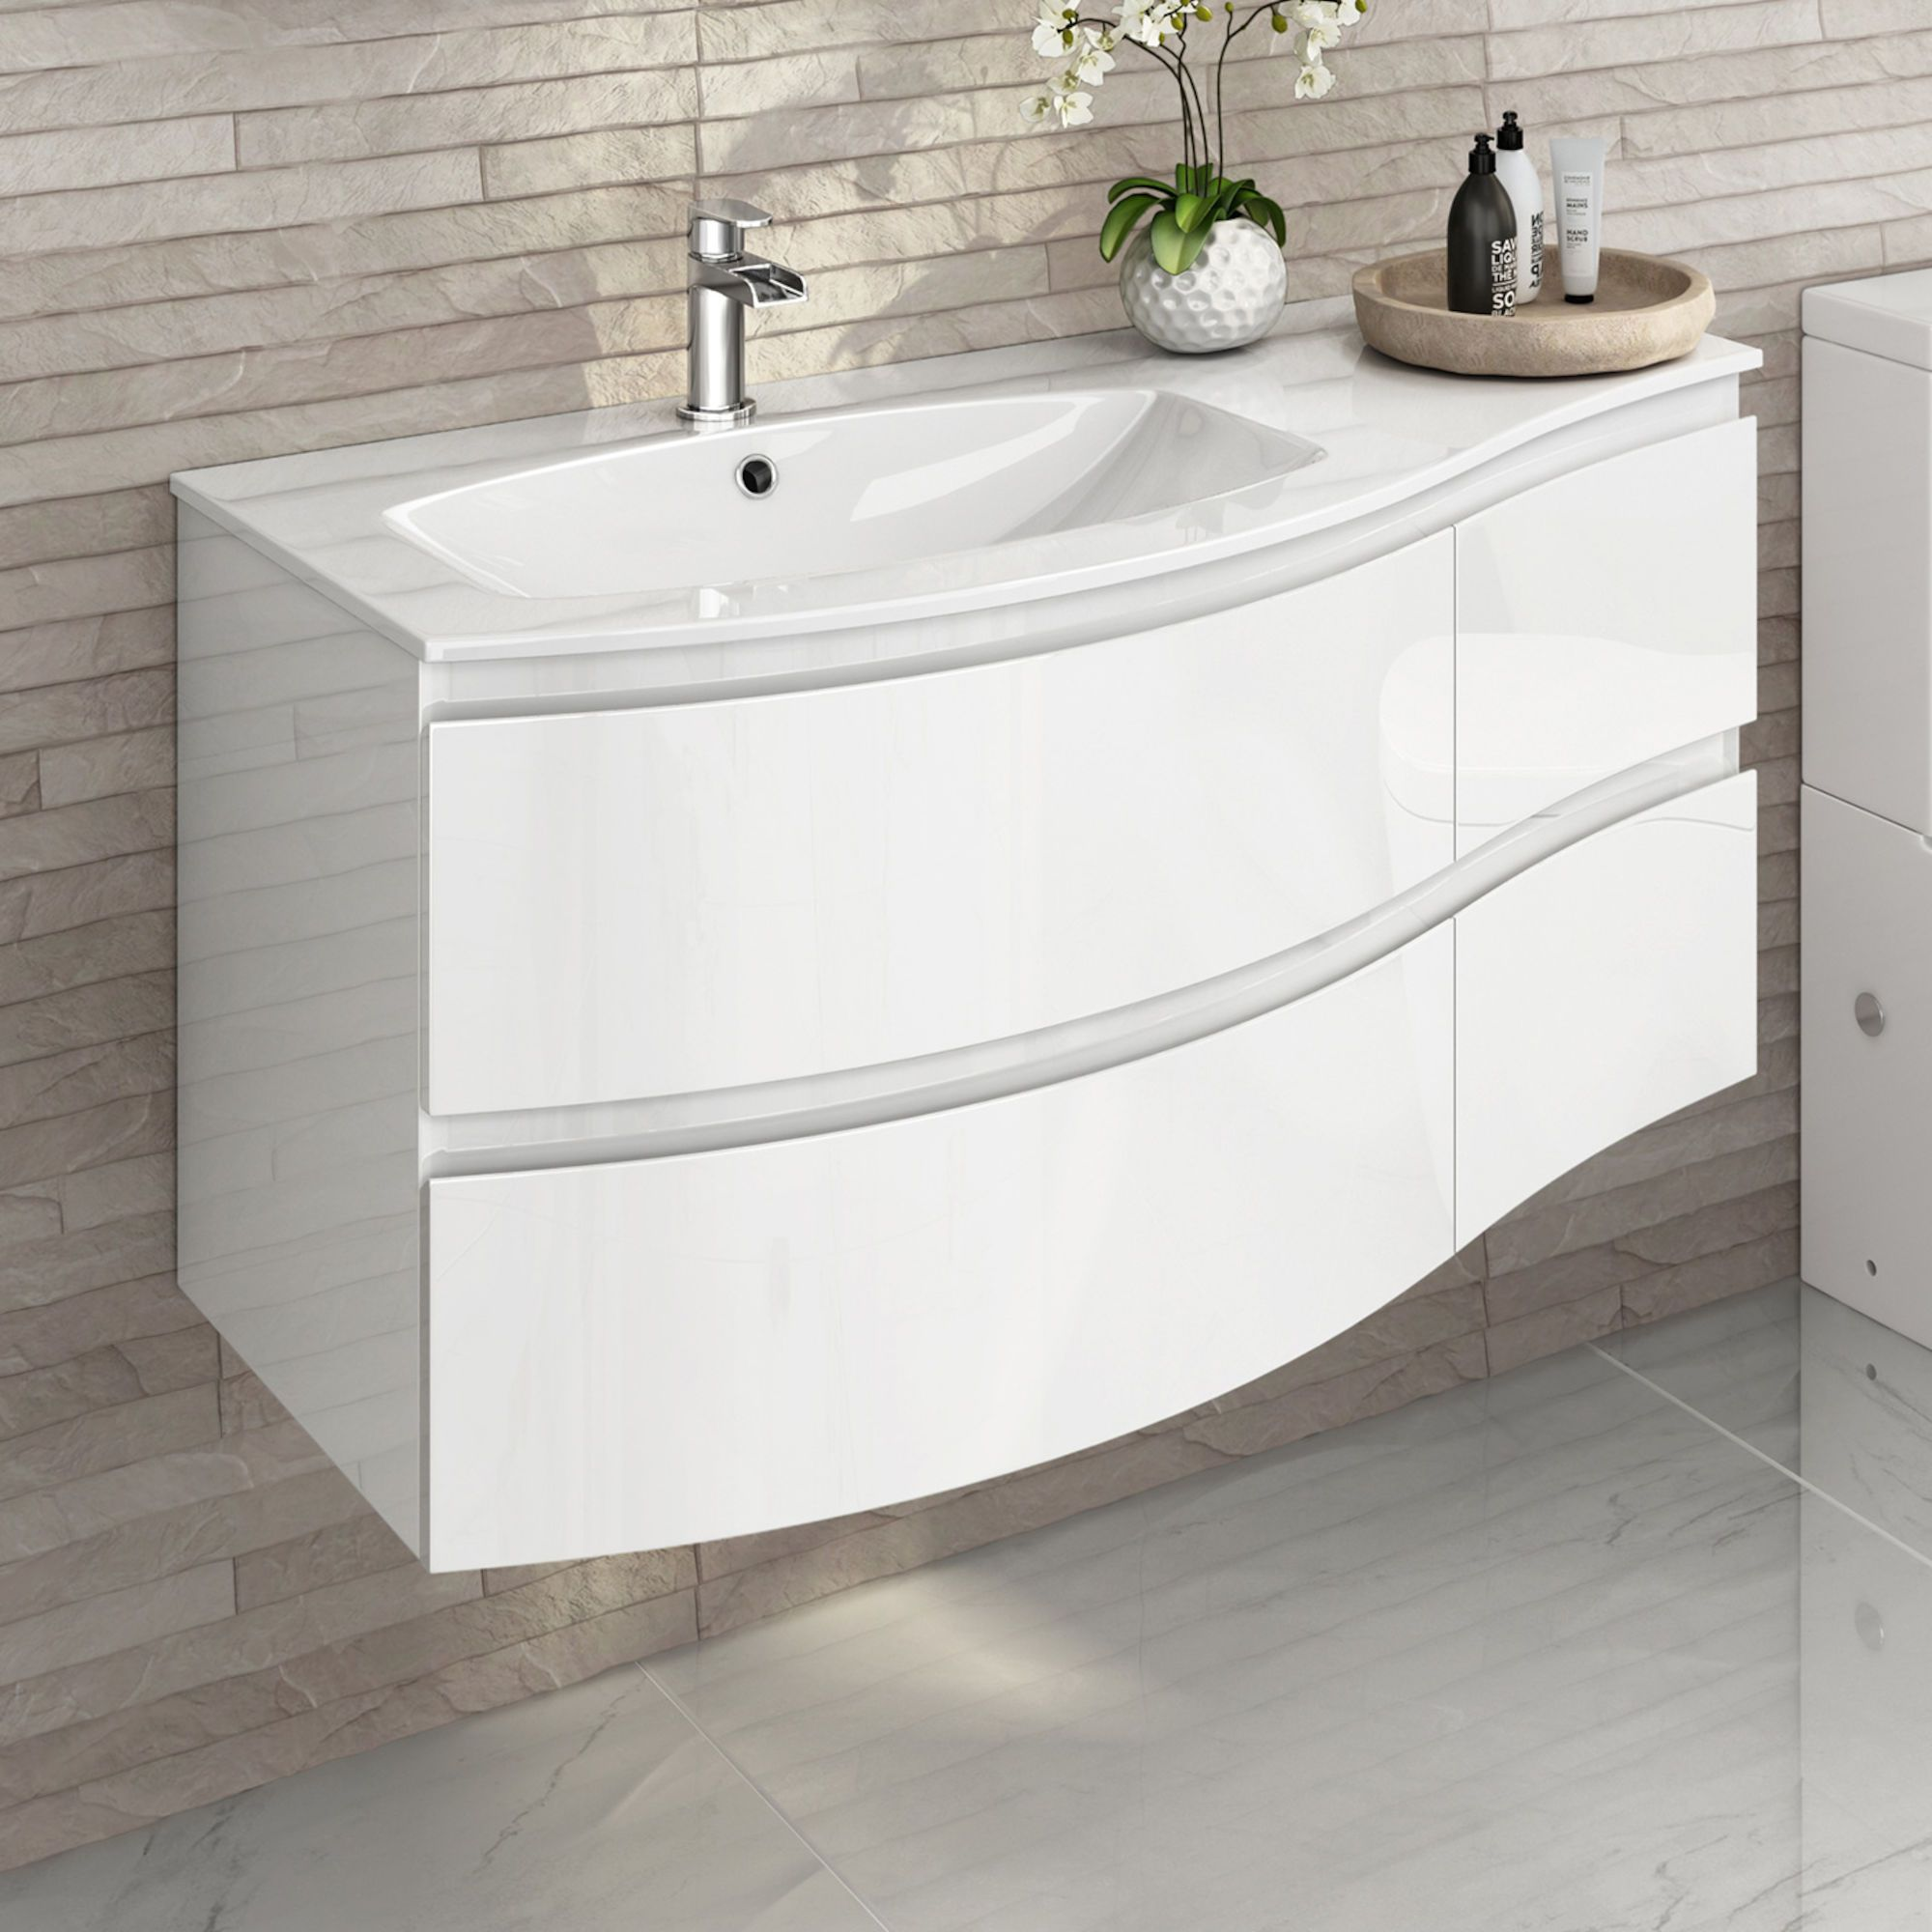 1040mm Amelie High Gloss White Curved Vanity Unit Left Hand Wall Hung Soak Com Bathroom Wall Units Vanity Units Bathroom Vanity Units